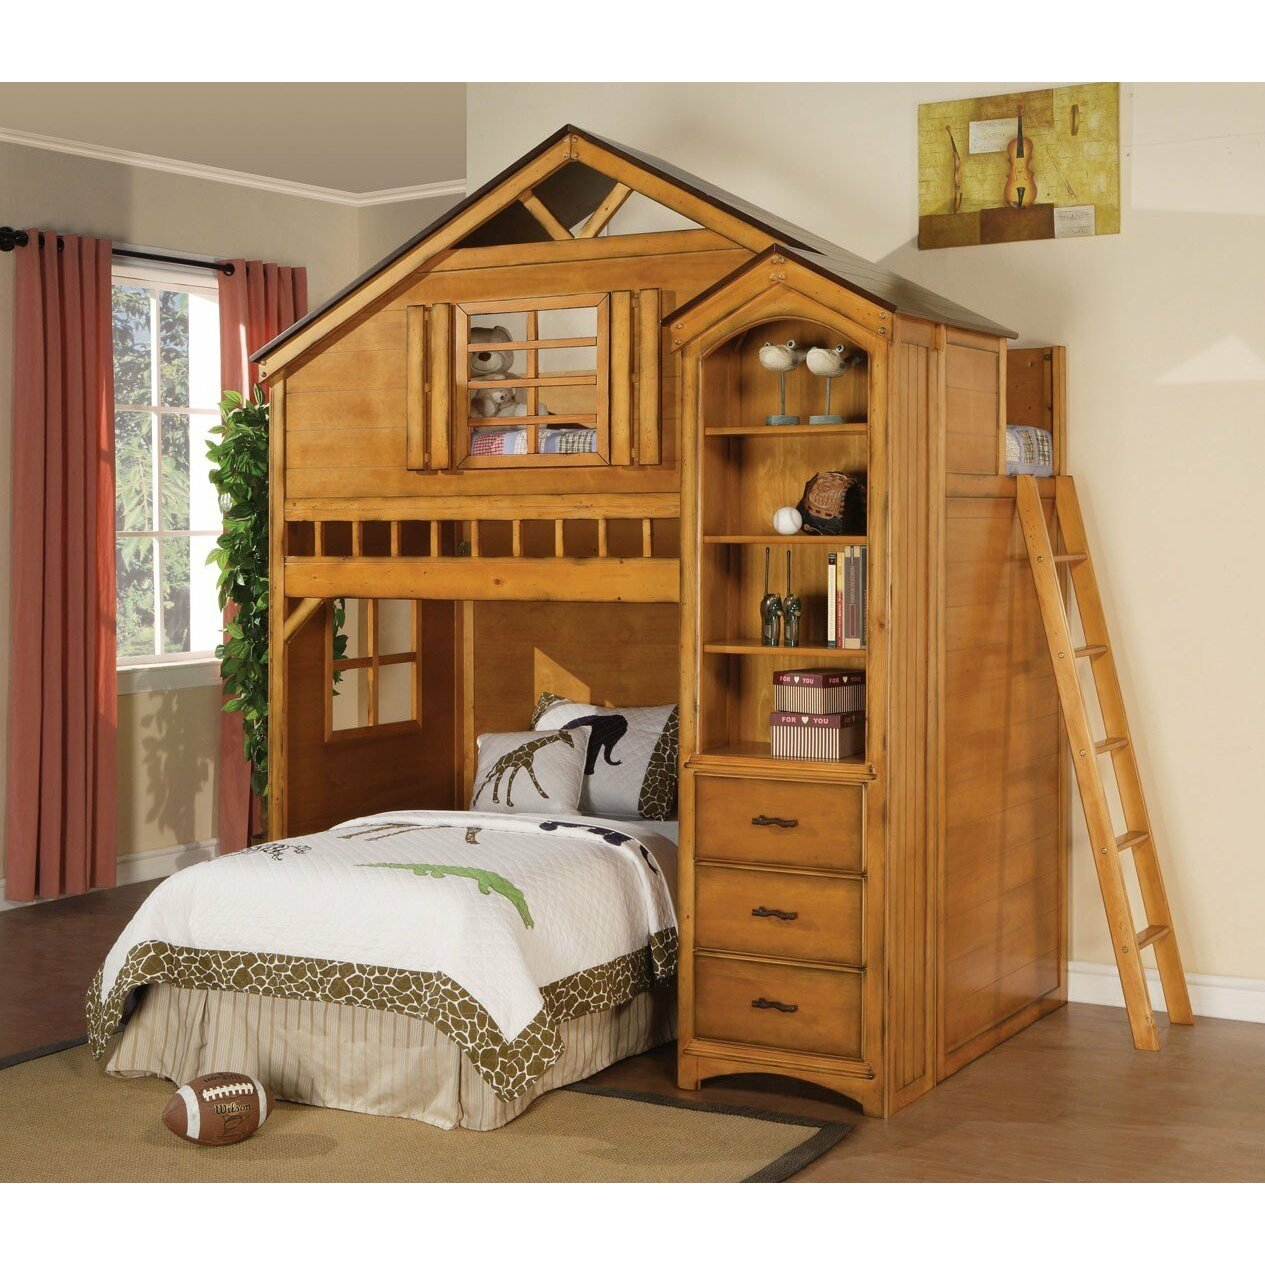 Bunk beds with desk and closet - Bunk Beds With Desk And Closet 24